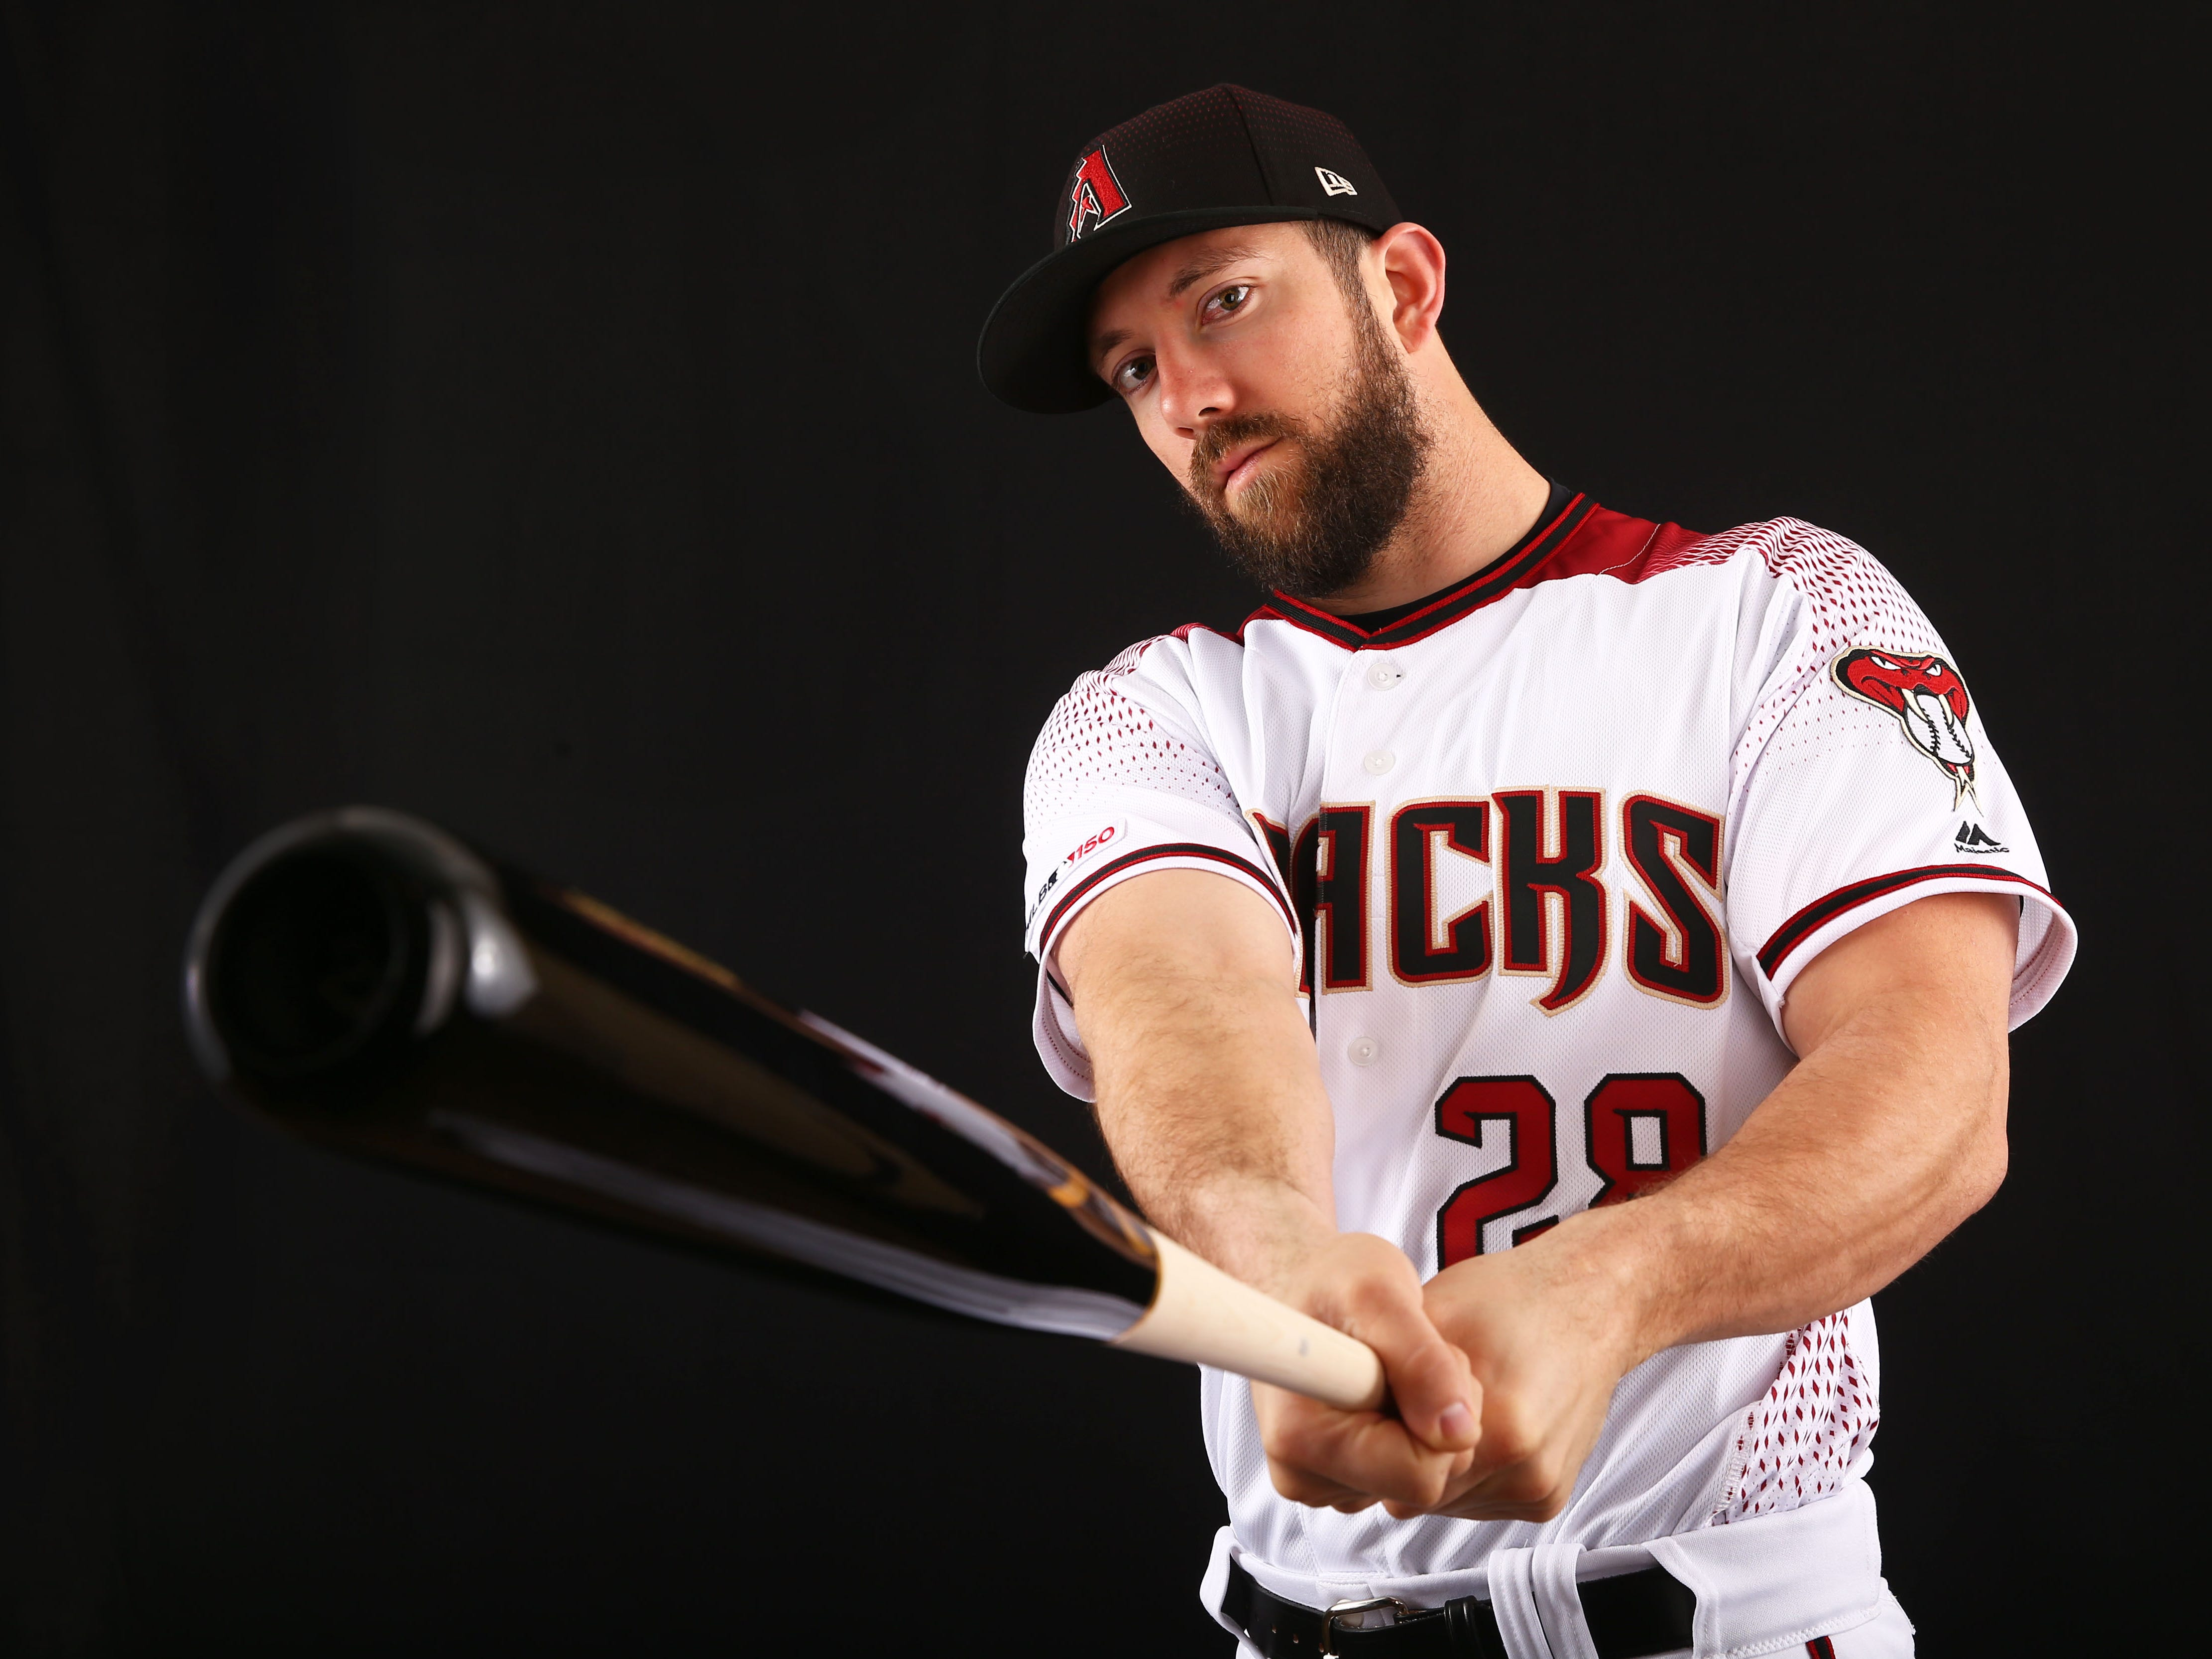 Steven Souza Jr. of the Arizona Diamondbacks poses for a photo during the annual Spring Training Photo Day on Feb. 20 at Salt River Fields in Scottsdale, Ariz.